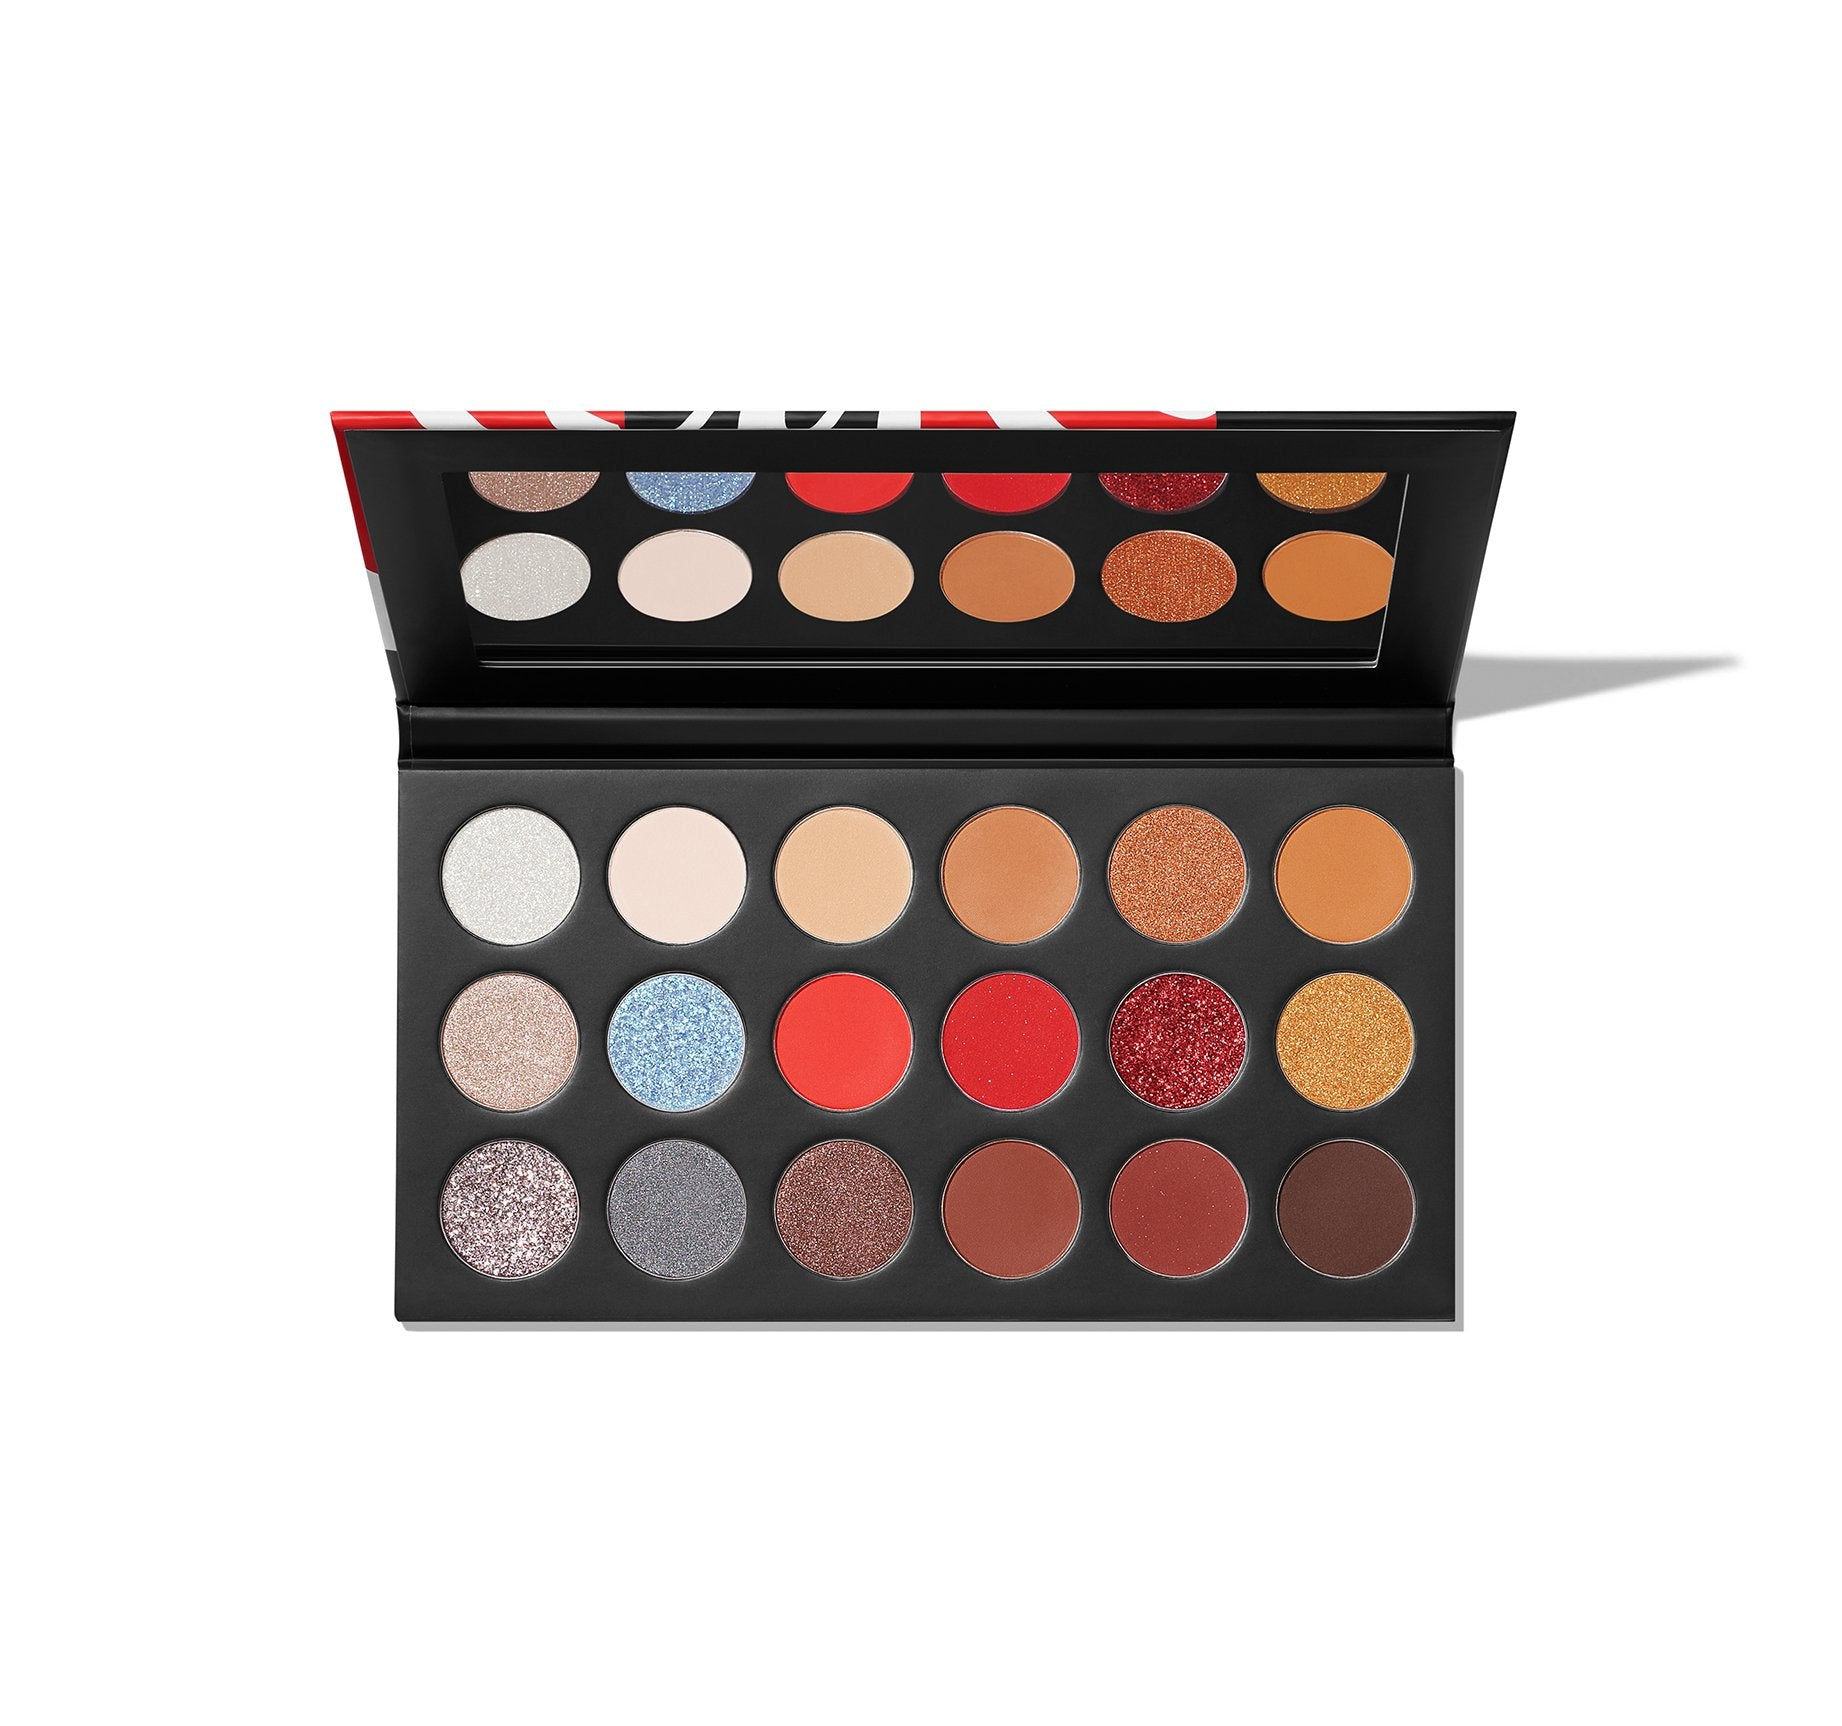 COCA-COLA X MORPHE THIRST FOR LIFE ARTISTRY PALETTE, view larger image